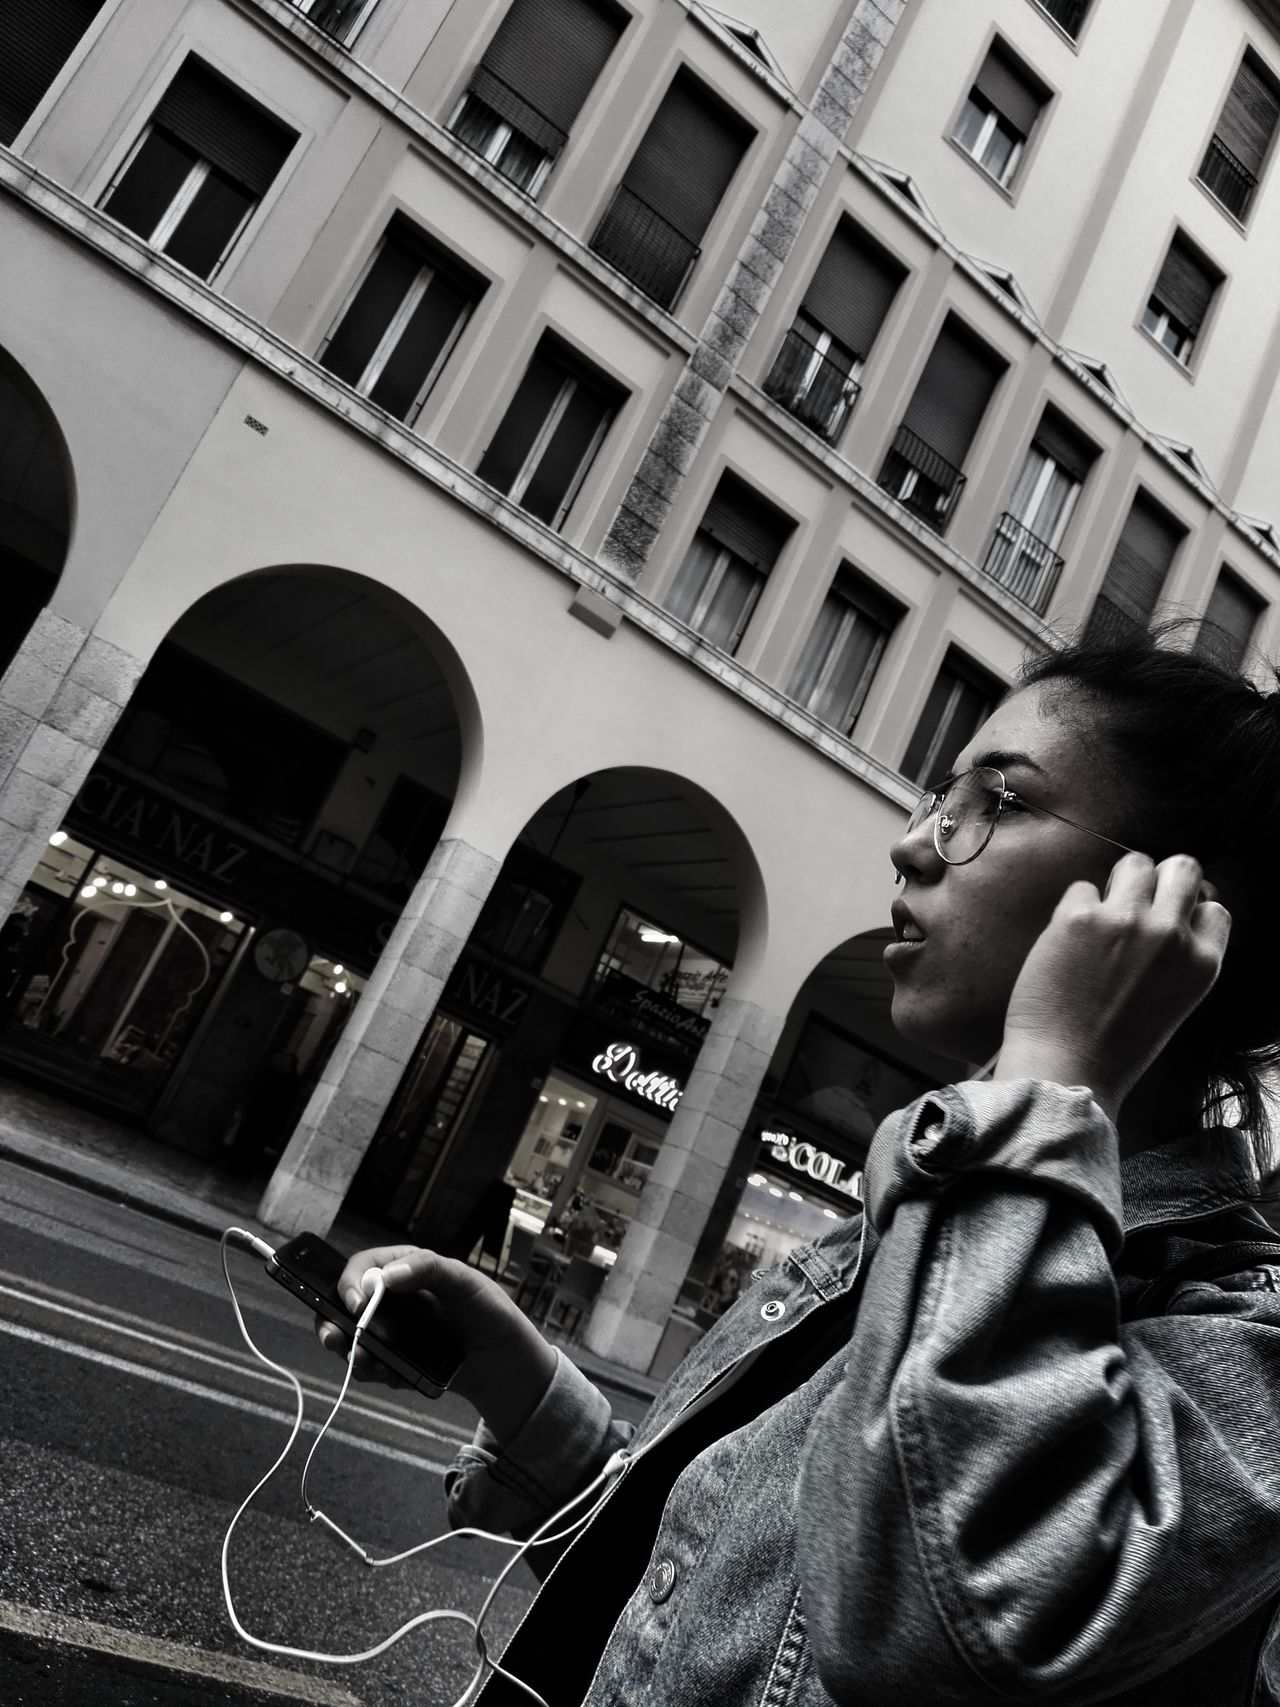 Low Angle View One Person Architecture Lifestyles Built Structure Building Exterior Real People People Adult Women Girl Street Photography Black And White Model Casual Clothing City Life City Street Bianco E Nero Ragazza EyeEm Gallery EyeEm Best Shots Listen To Music Music Listening Music The Street Photographer - 2017 EyeEm Awards